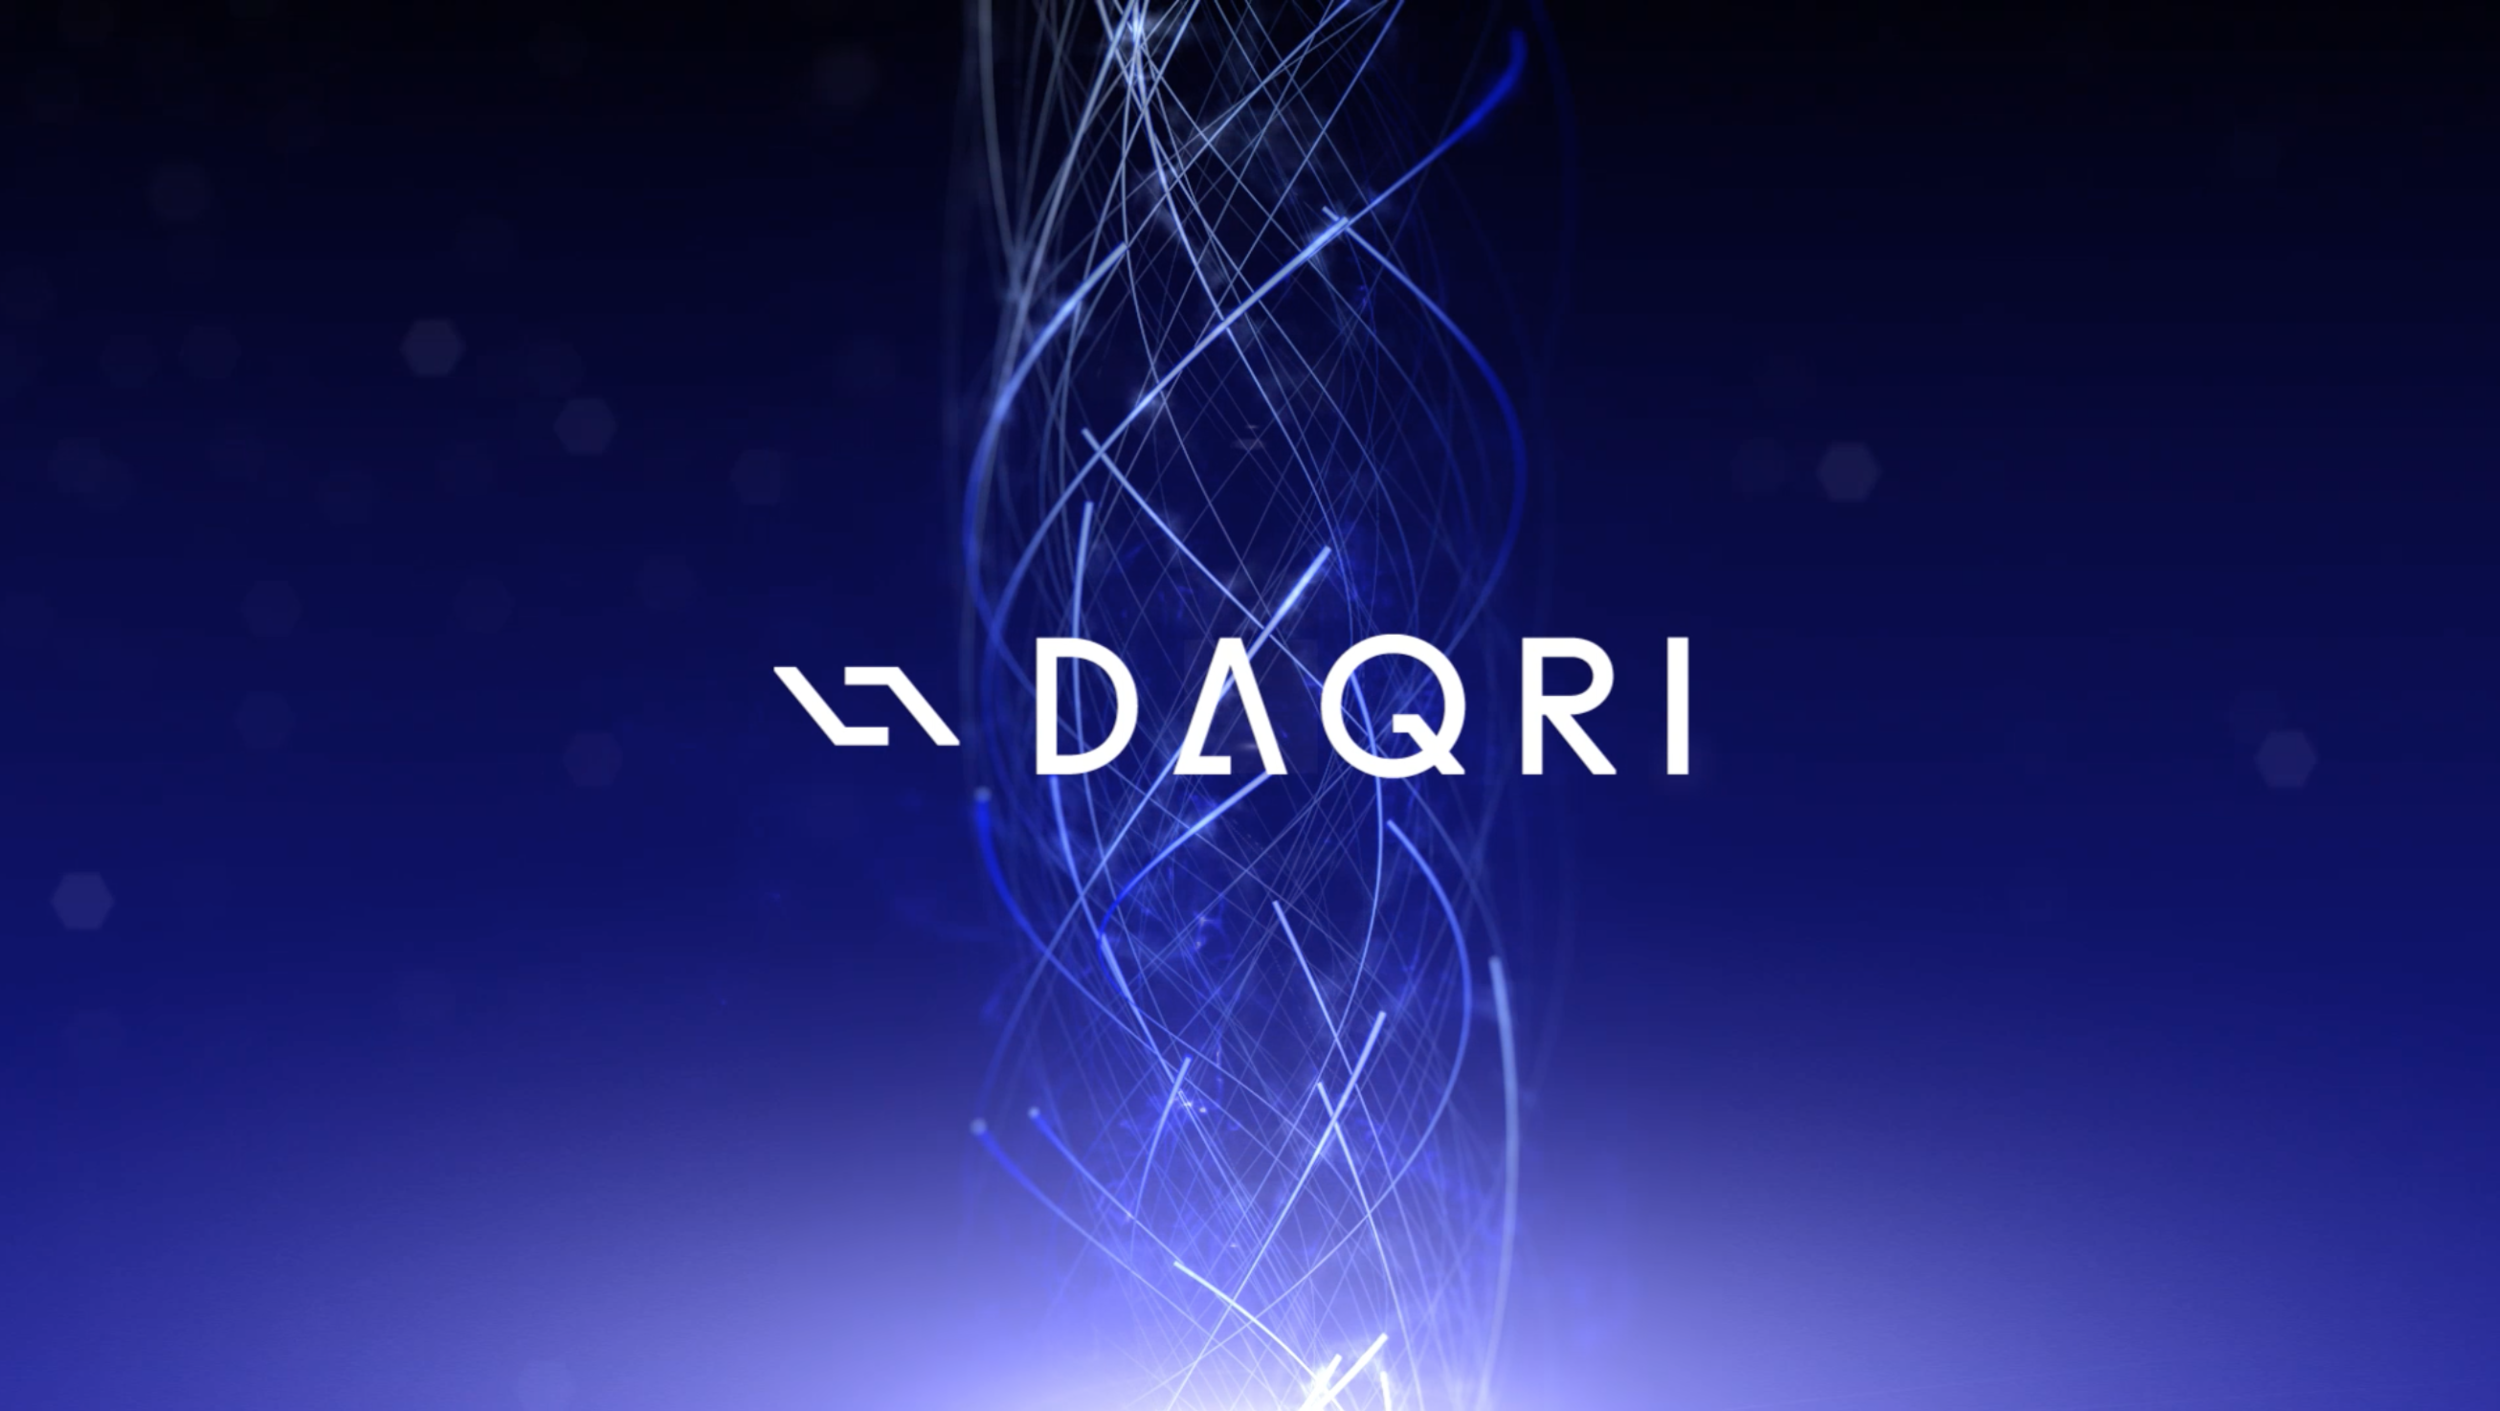 DAQRI - Augmented reality firmDigital Media & Design Specialist2015-2016